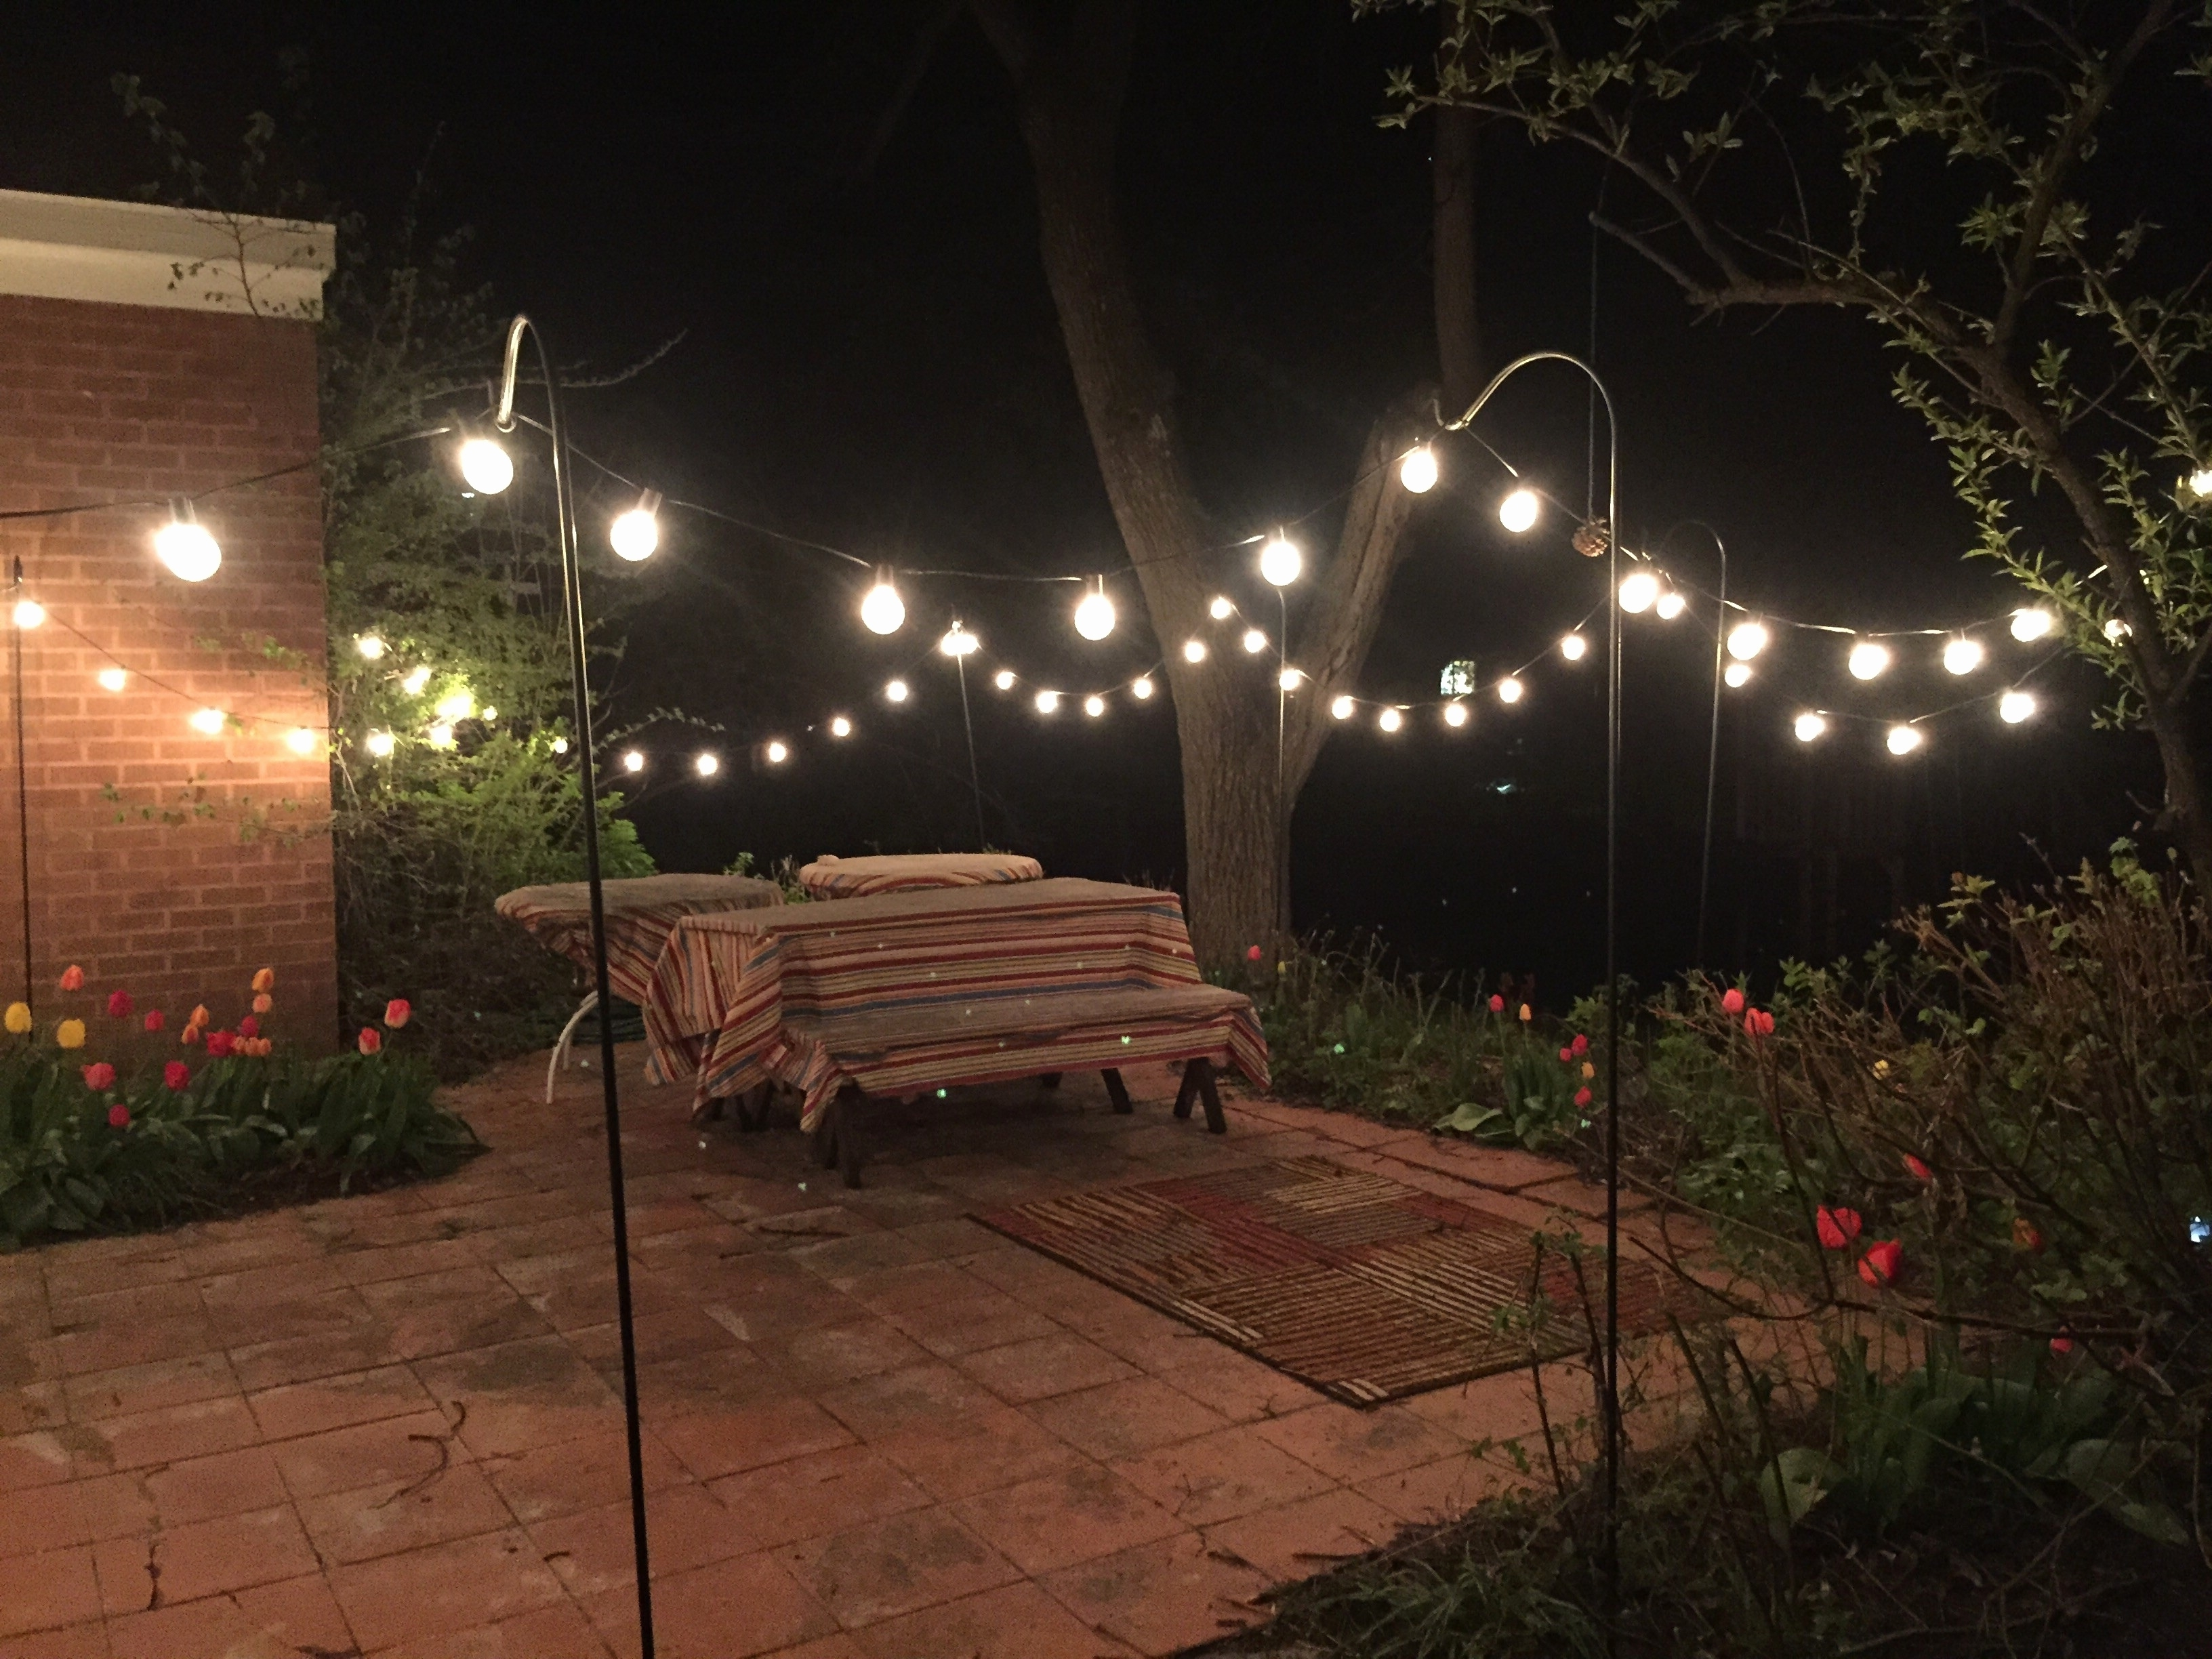 Preferred Exciting Target Outdoor String Lights Images – Best Inspiration Home In Hanging Outdoor String Lights At Target (View 19 of 20)